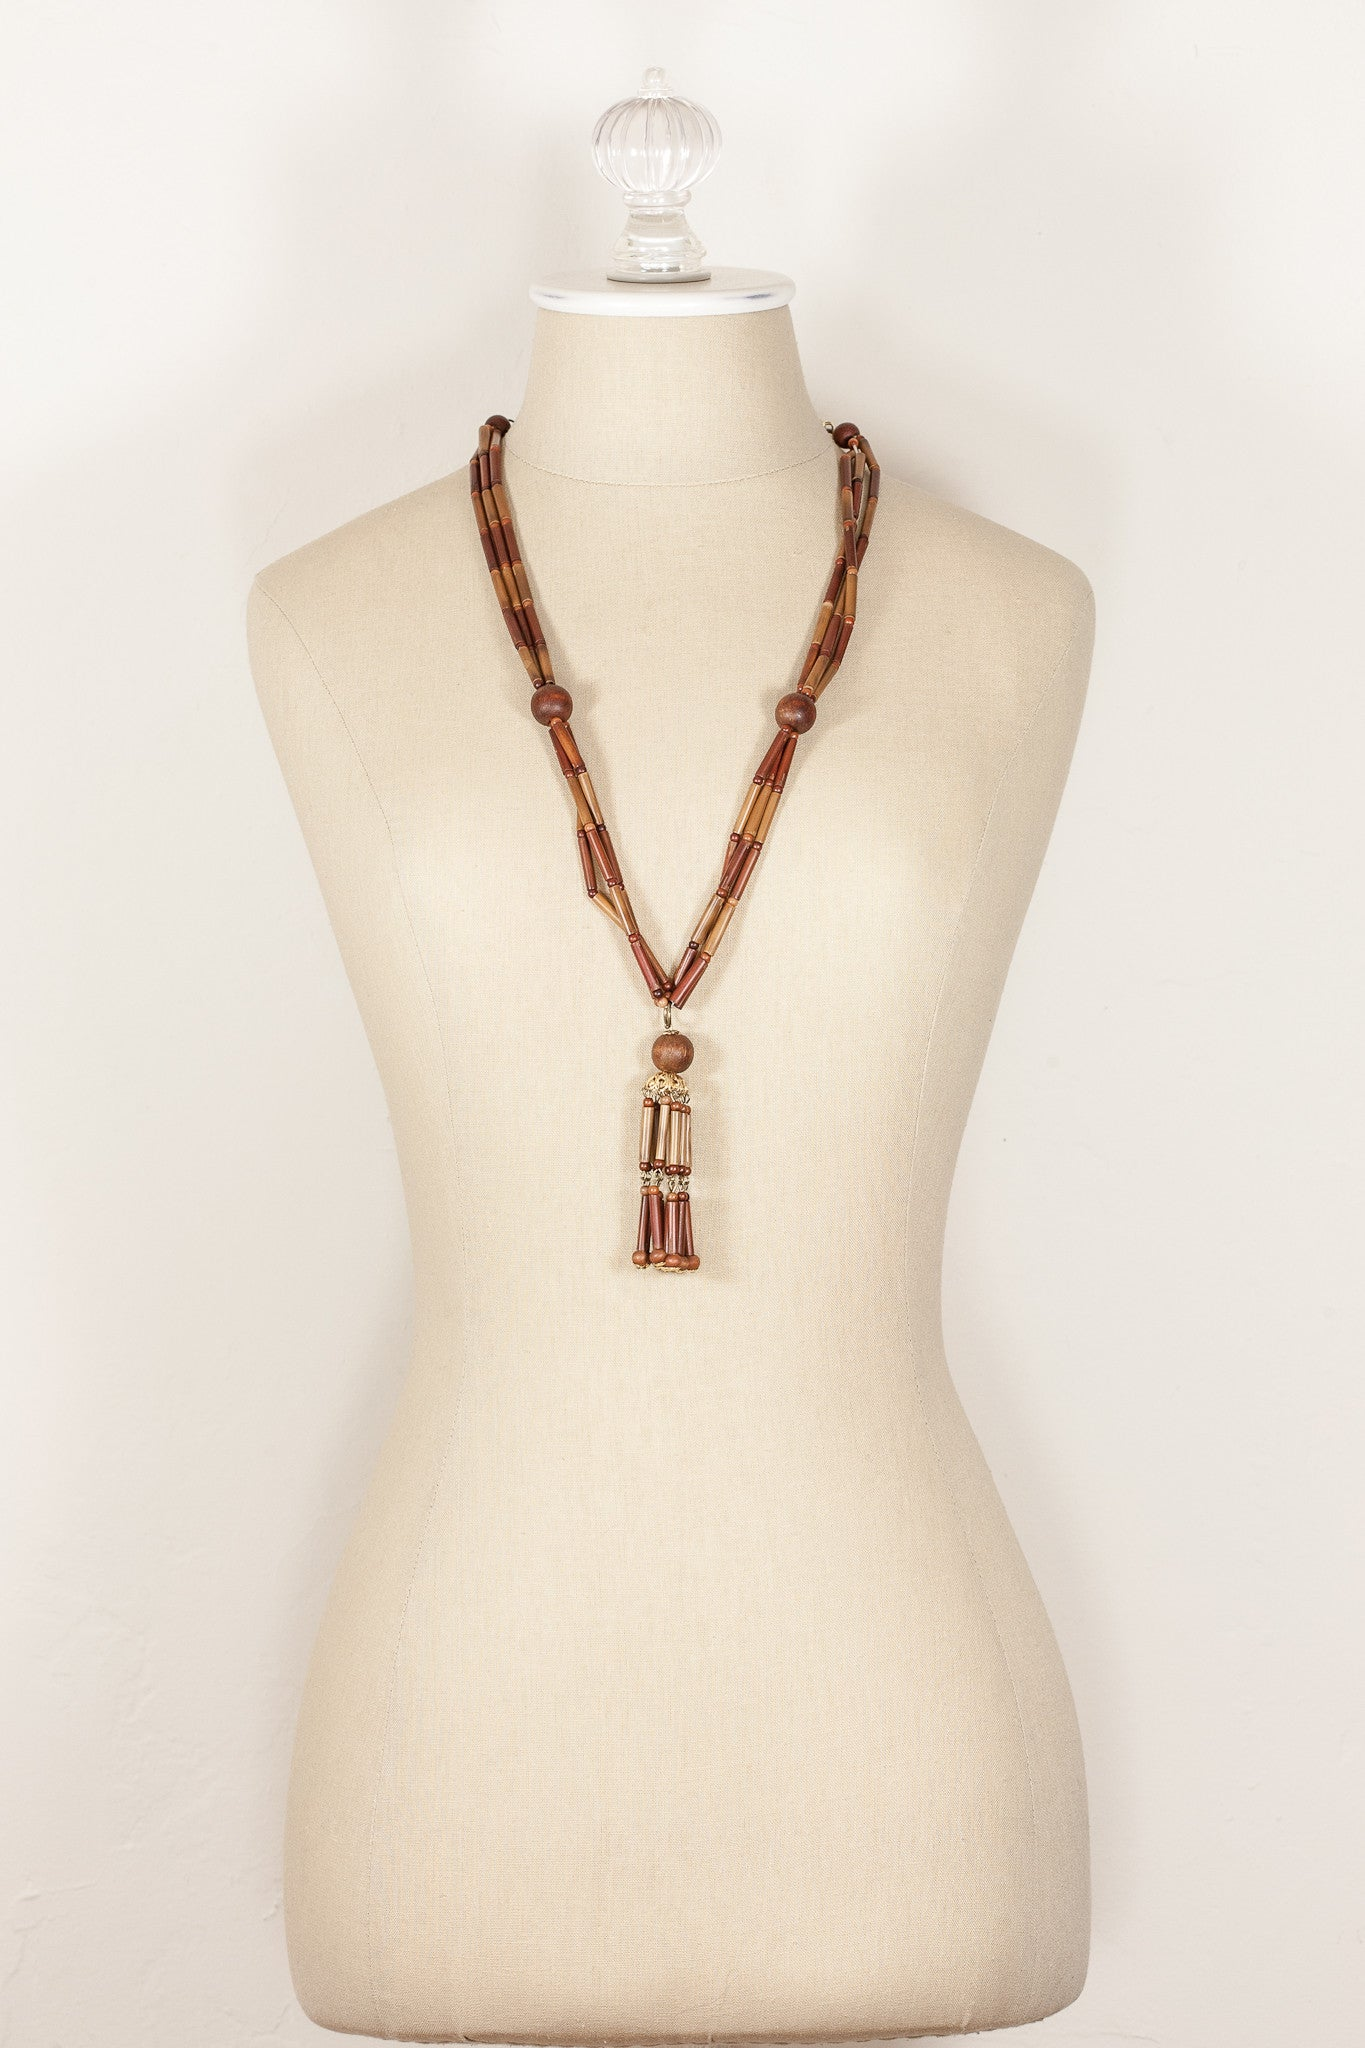 60's__Vintage__Lightweight Tassel Necklace